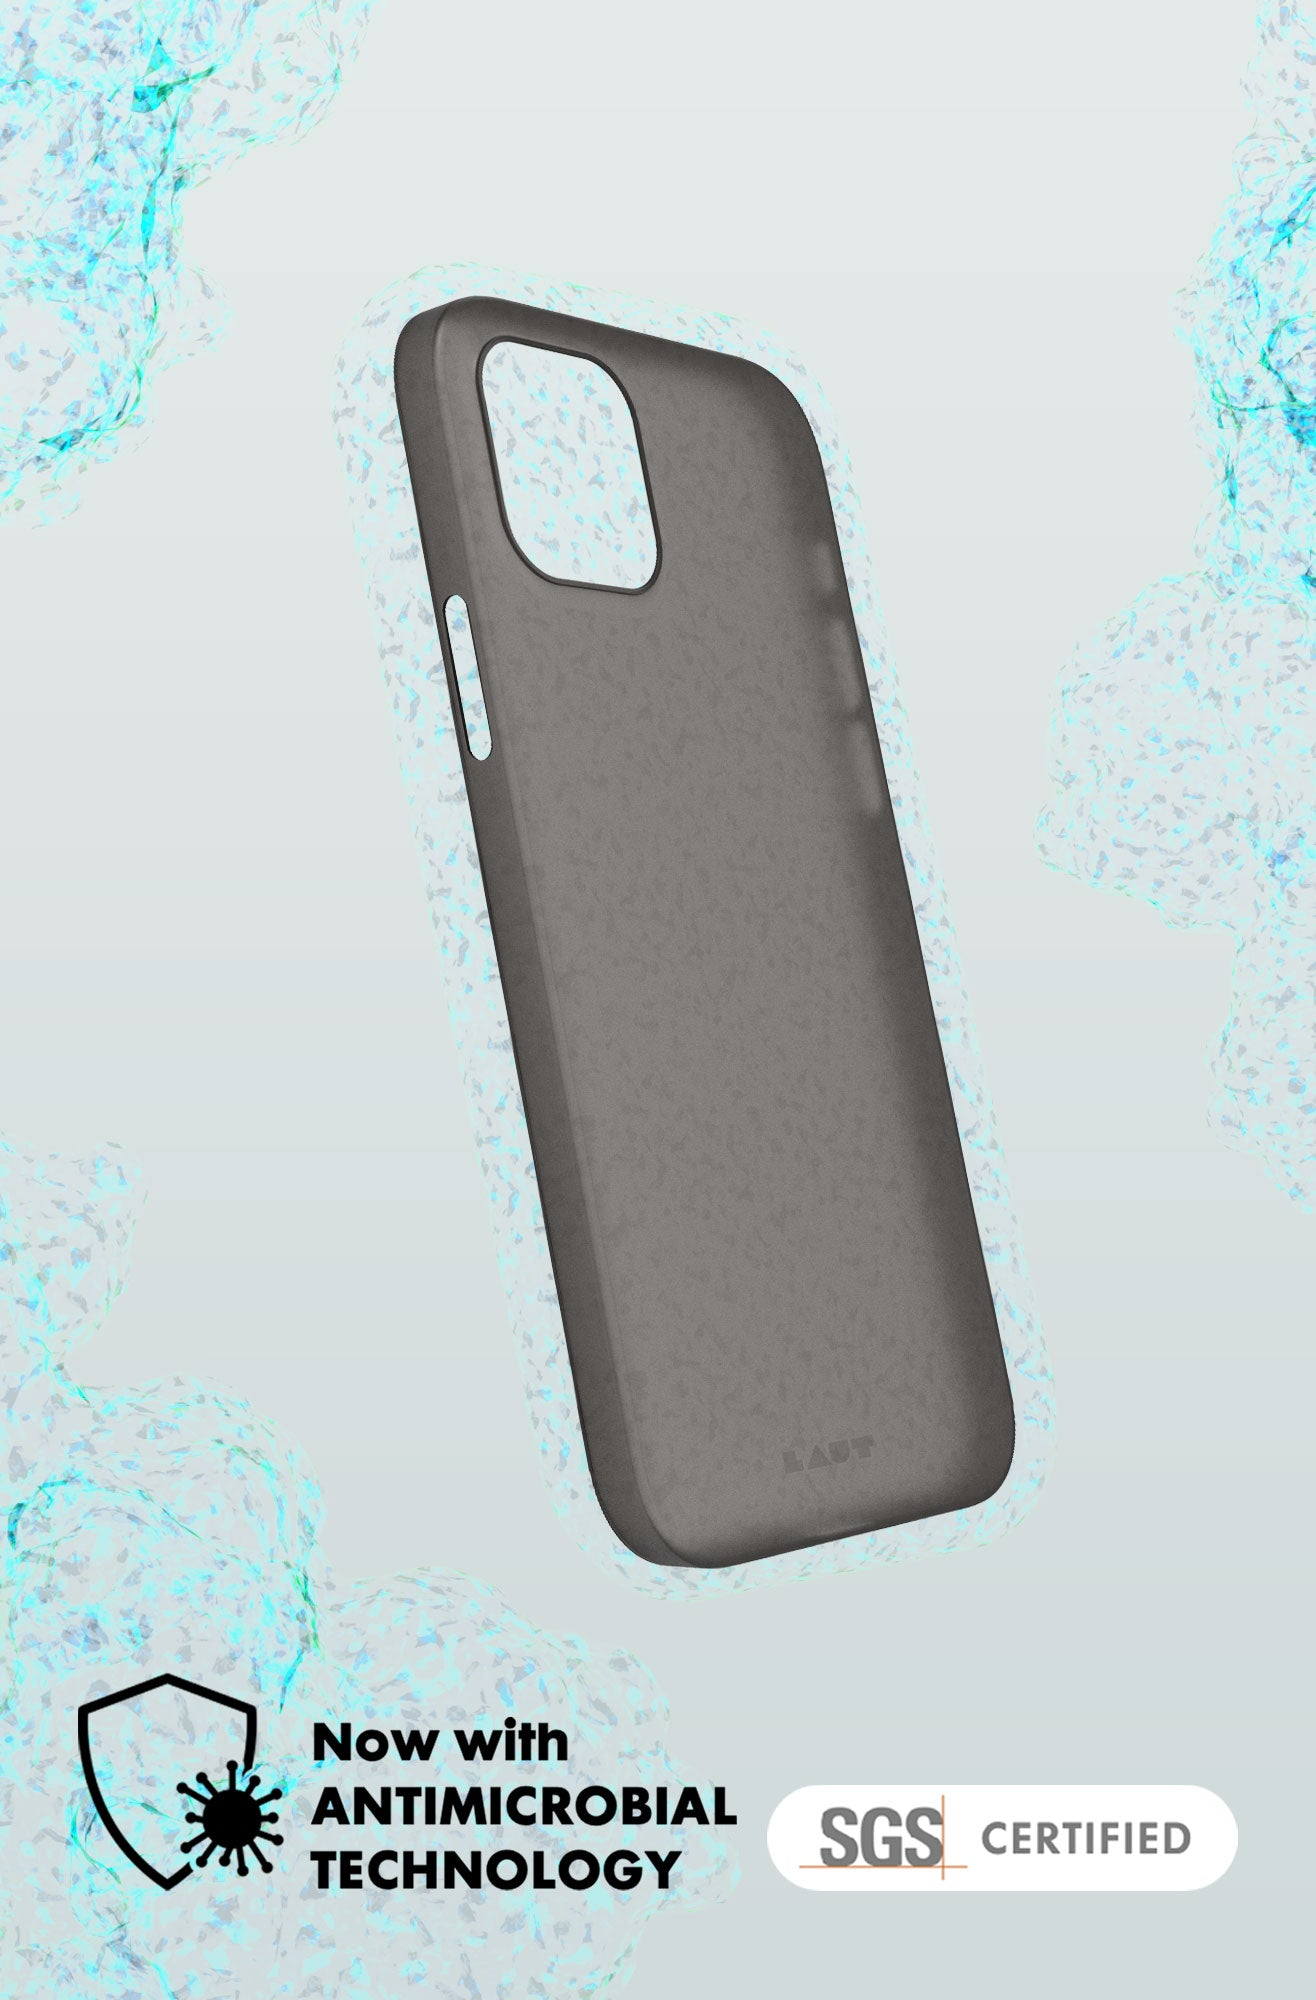 LAUT - SLIMSKIN case for iPhone 12 series